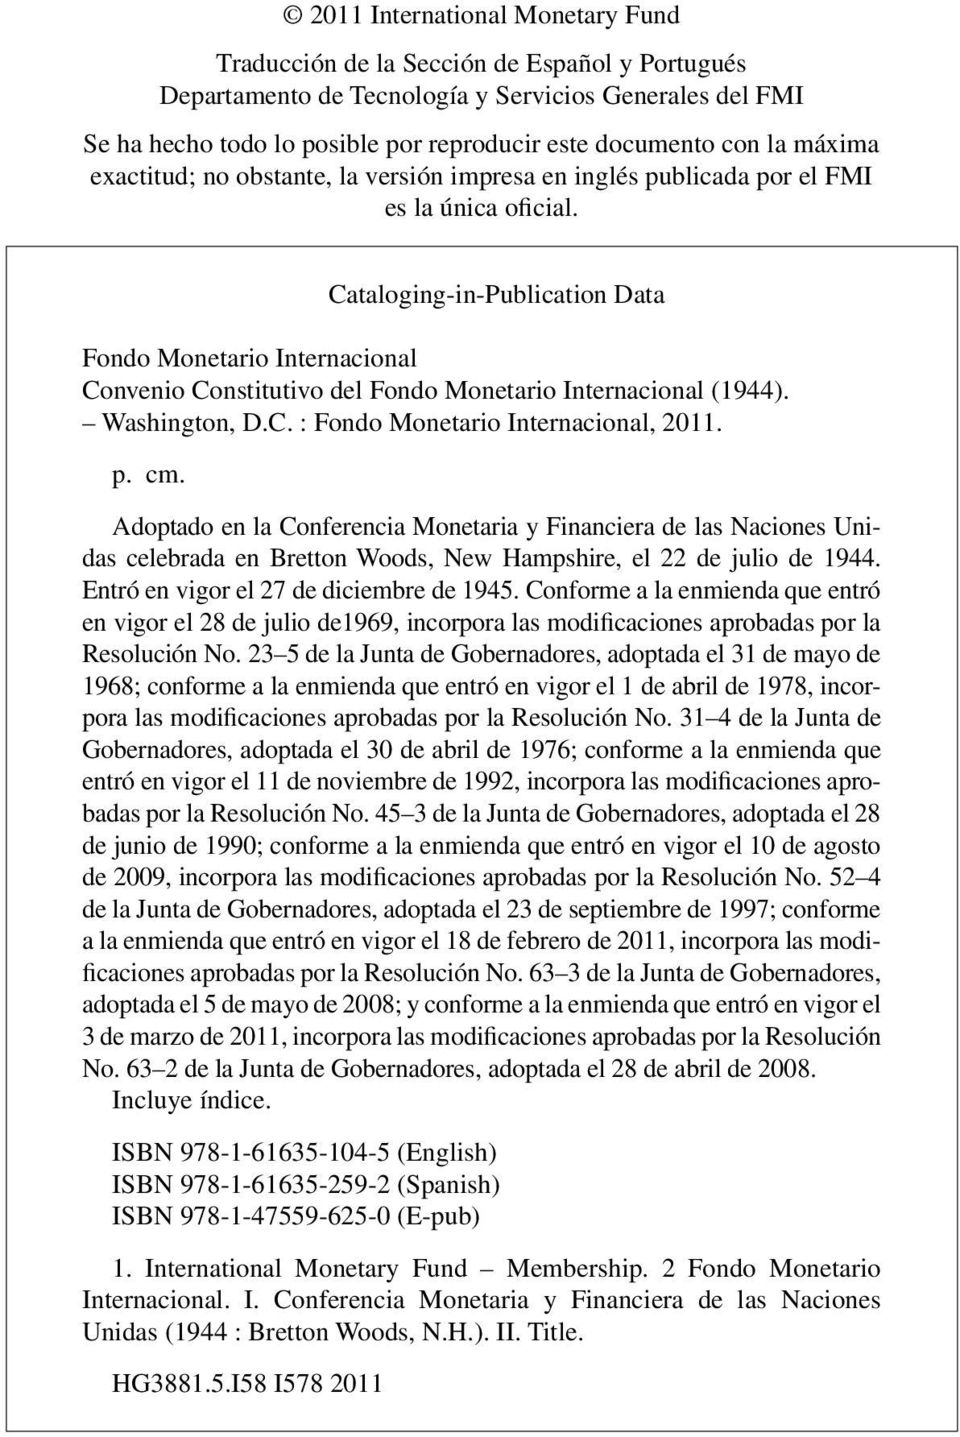 Cataloging-in-Publication Data Fondo Monetario Internacional Convenio Constitutivo del Fondo Monetario Internacional (1944). Washington, D.C. : Fondo Monetario Internacional, 2011. p. cm.